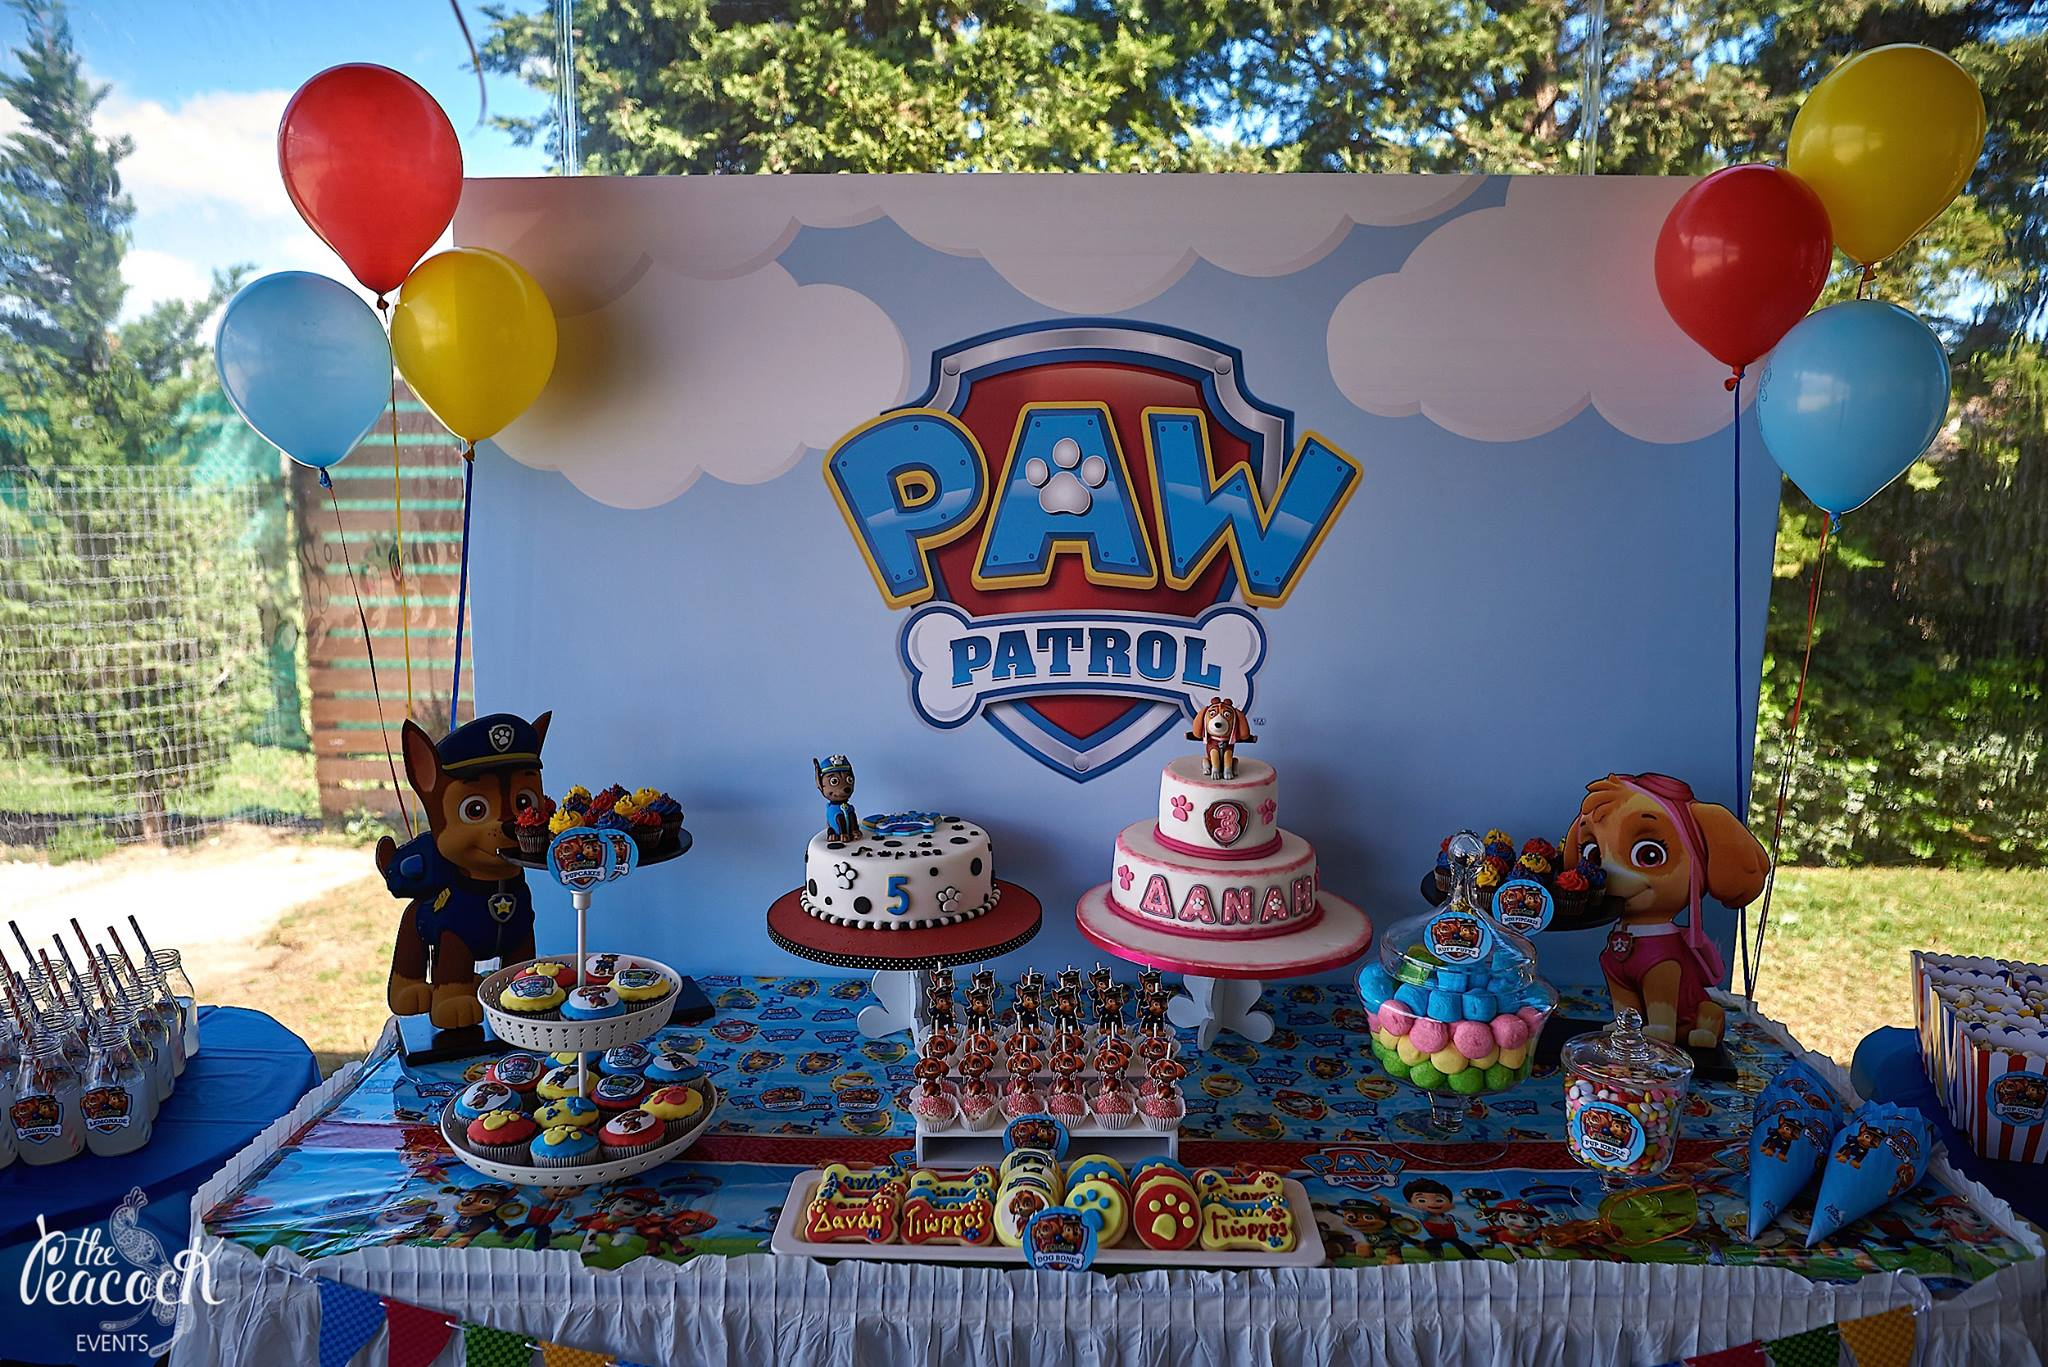 George S 5th Amp Danae S 3rd Birthday Party Paw Patrol The